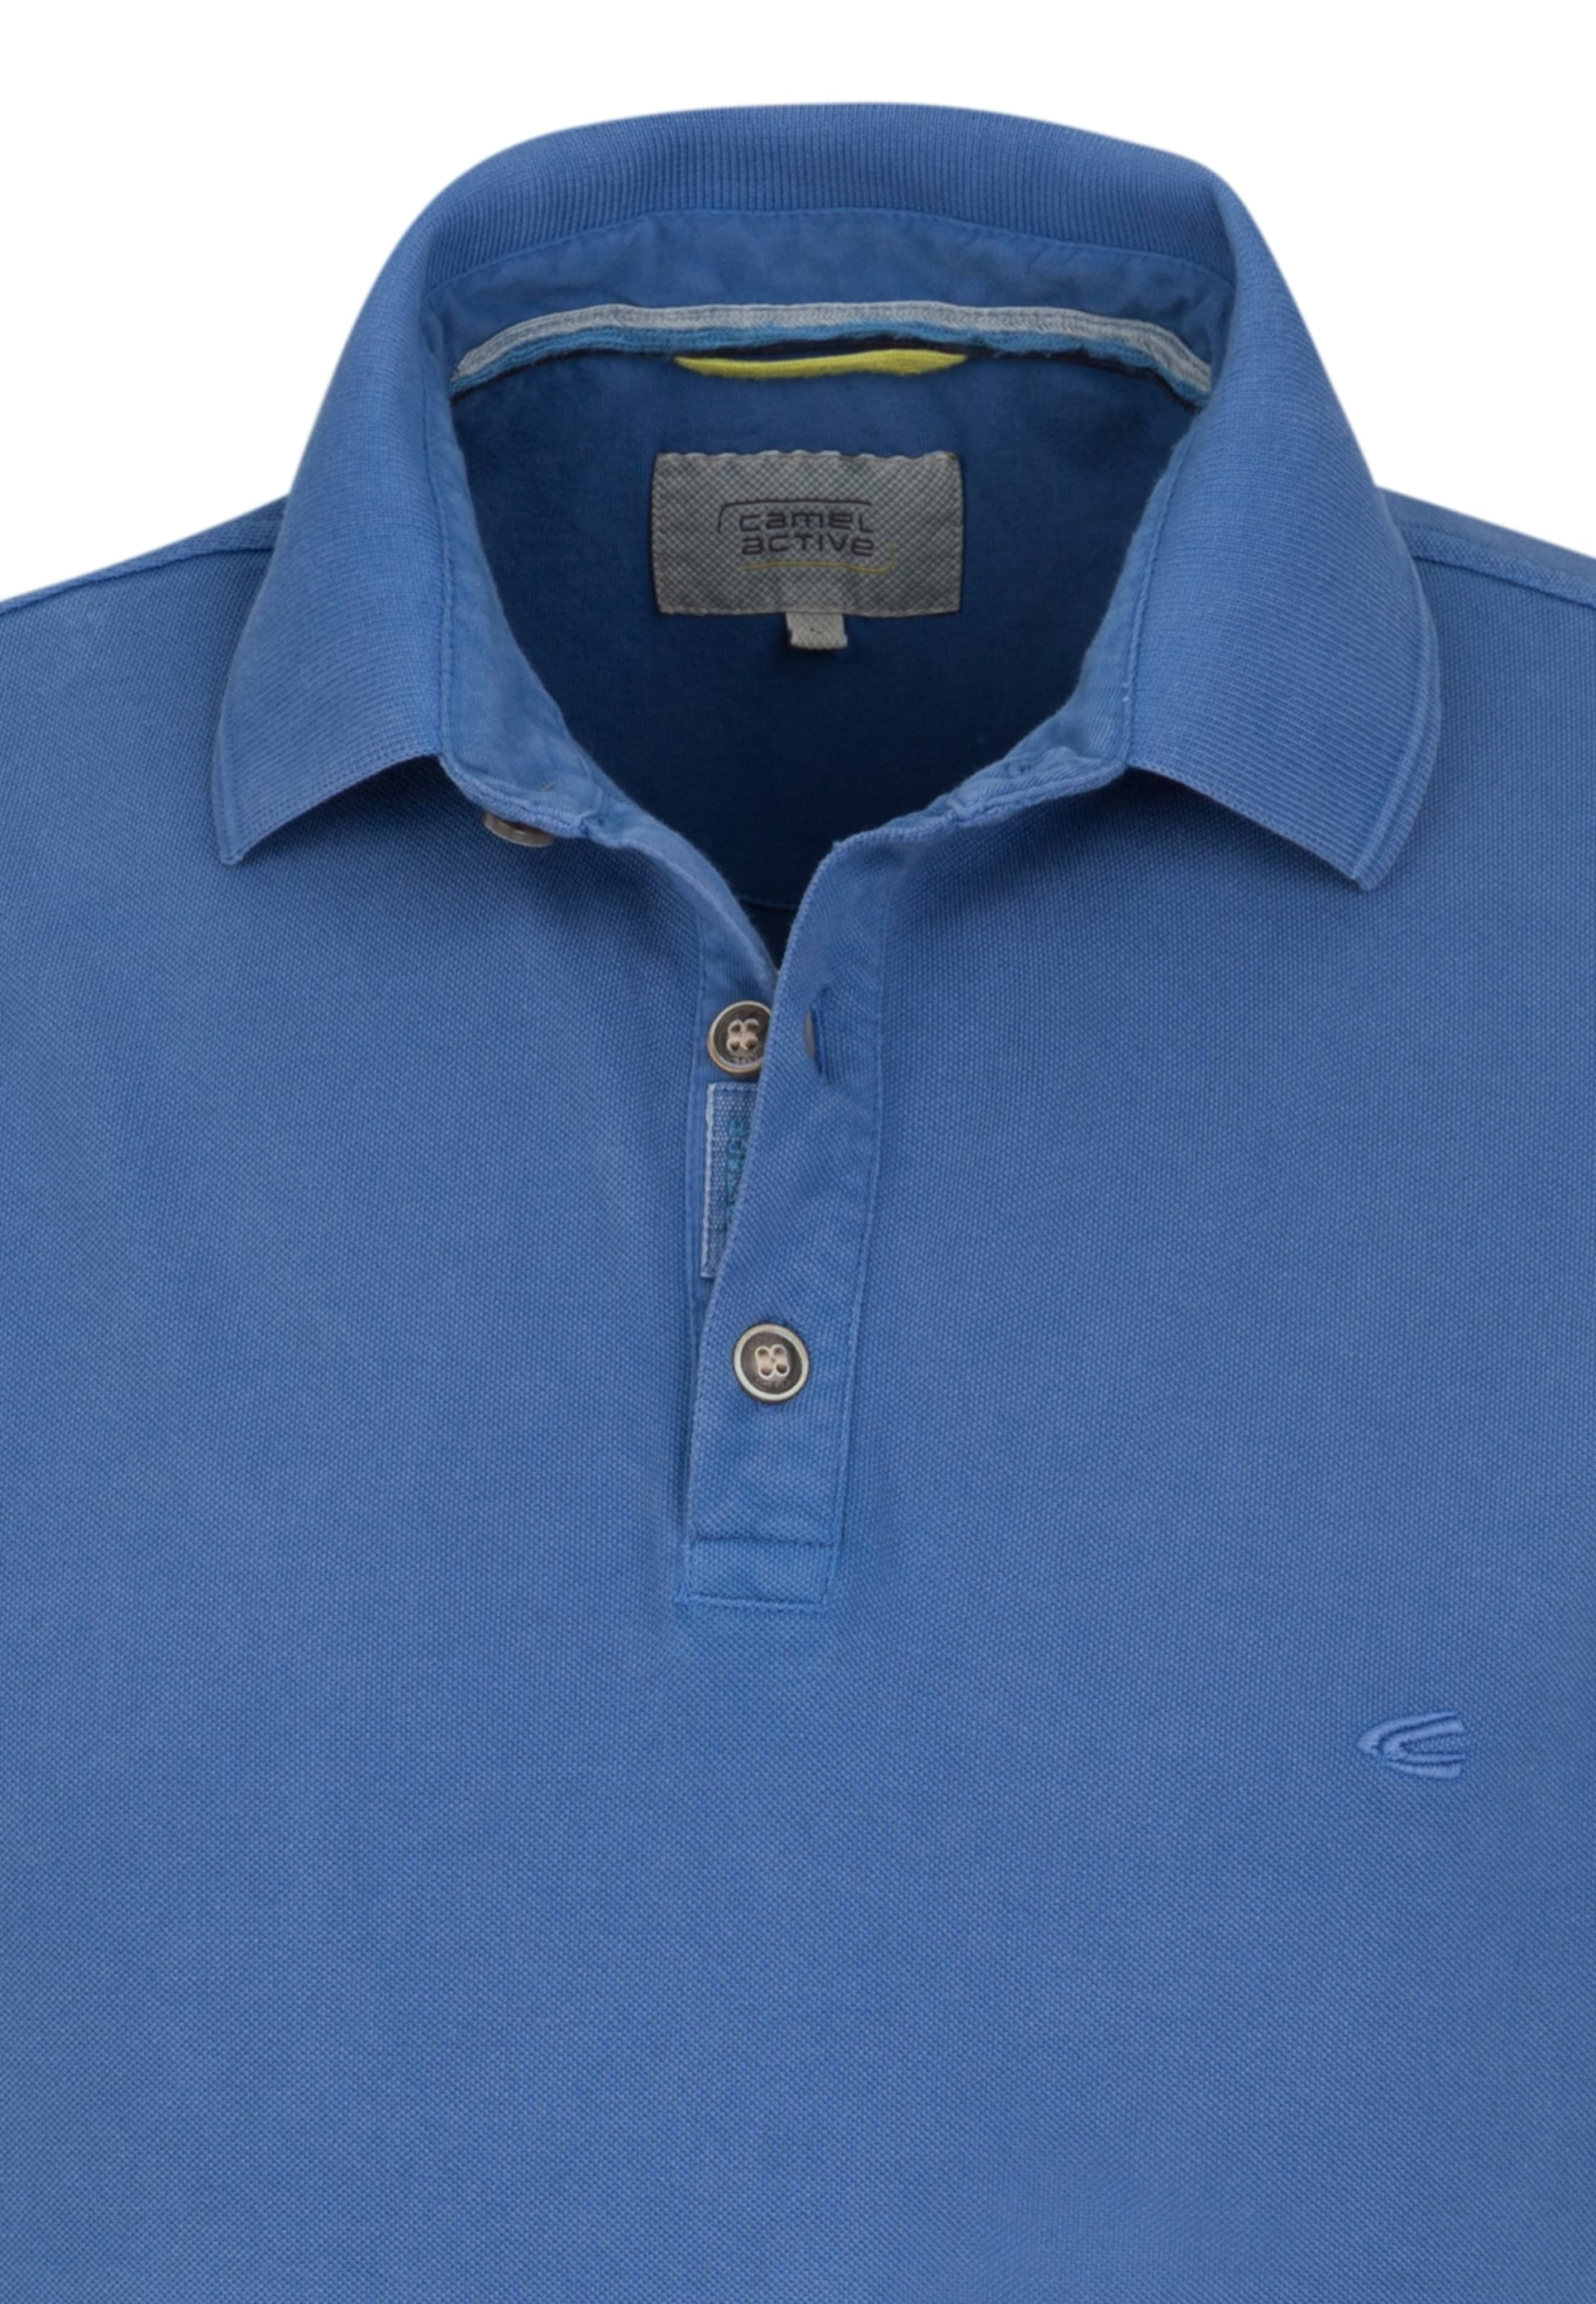 Blau Active Camel shirt In Polo 0OwP8Xnk